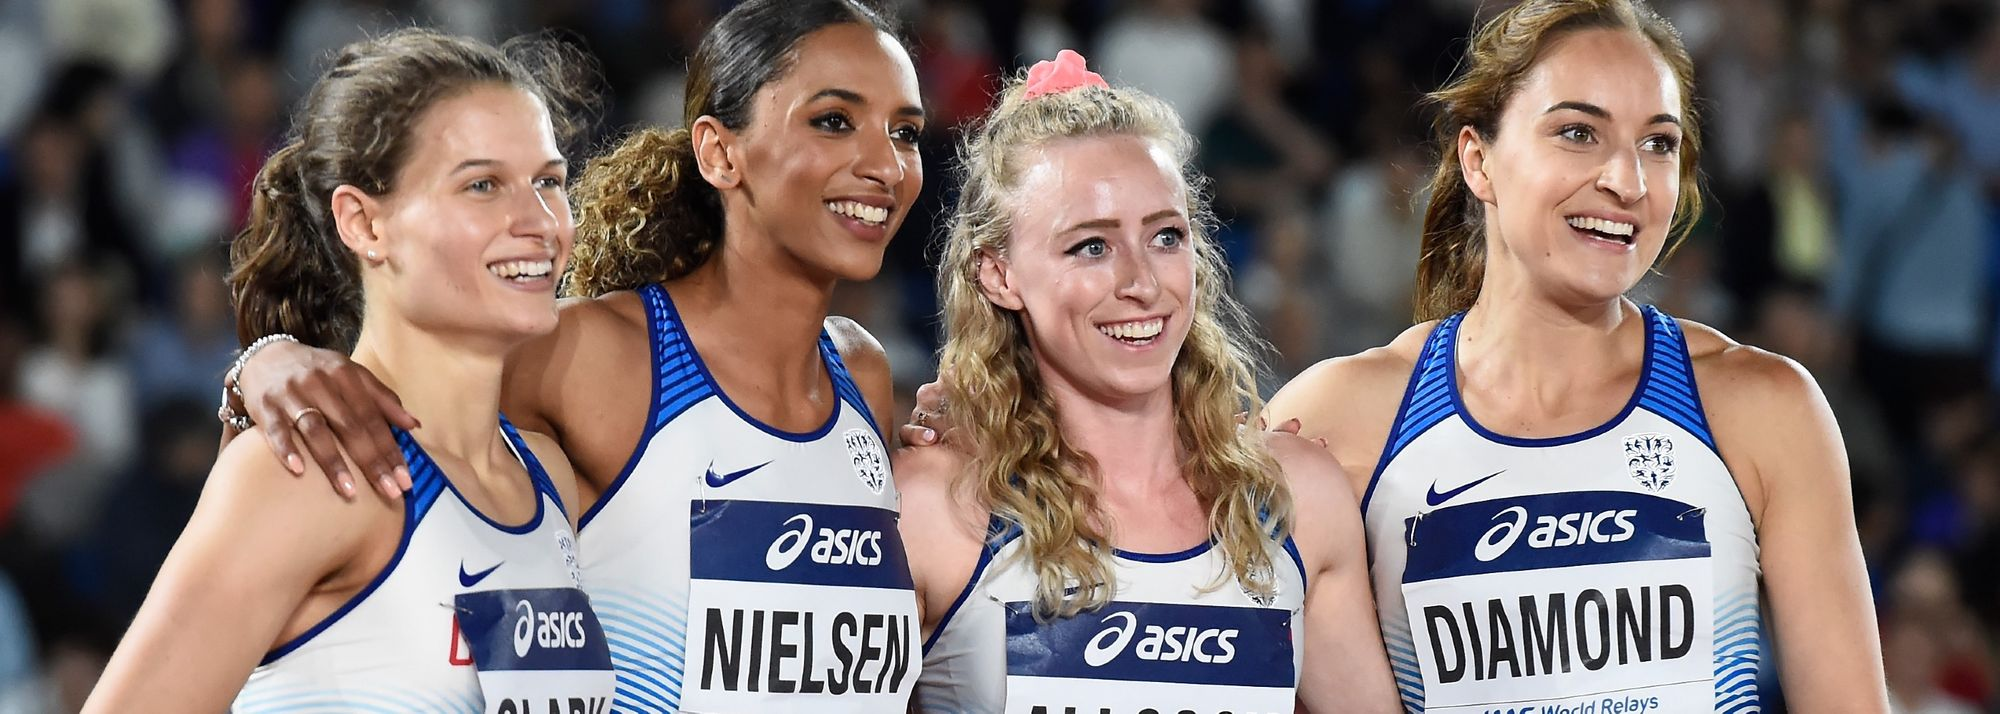 British Athletics has announced a 16-strong team for the women's, men's and mixed 4x400m events at the World Athletics Relays Silesia21 on 1-2 May.